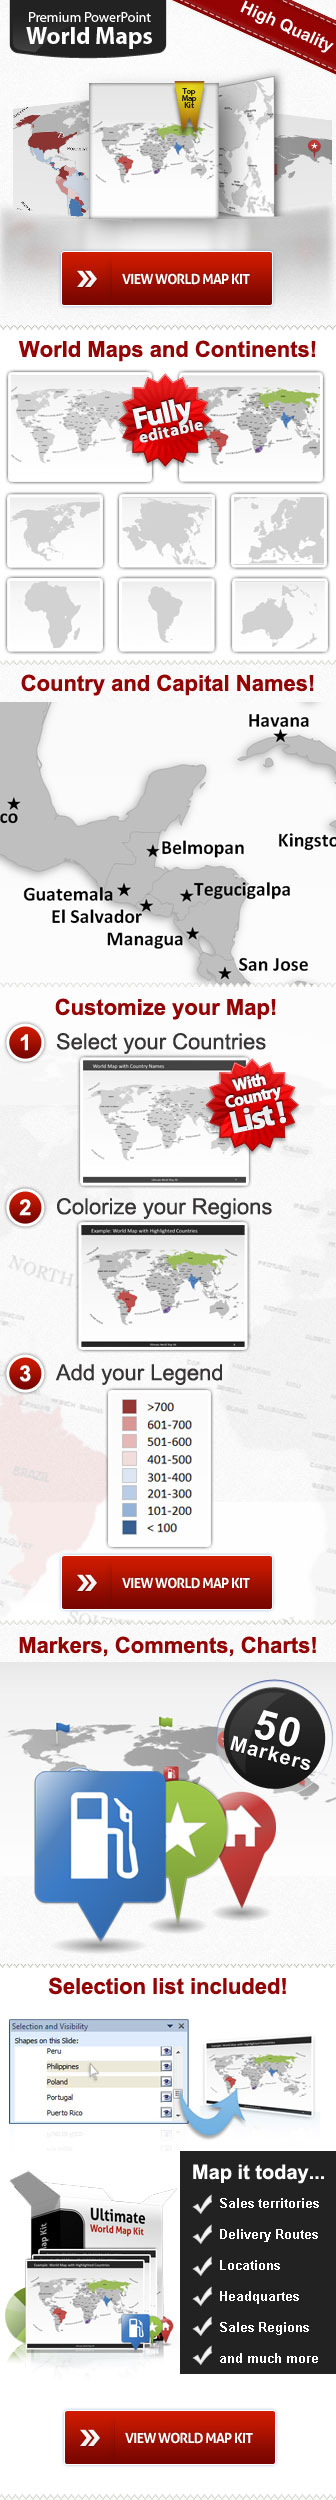 Download free editable powerpoint worldmaps maps map templates for powerpoint world map kit classic gumiabroncs Images